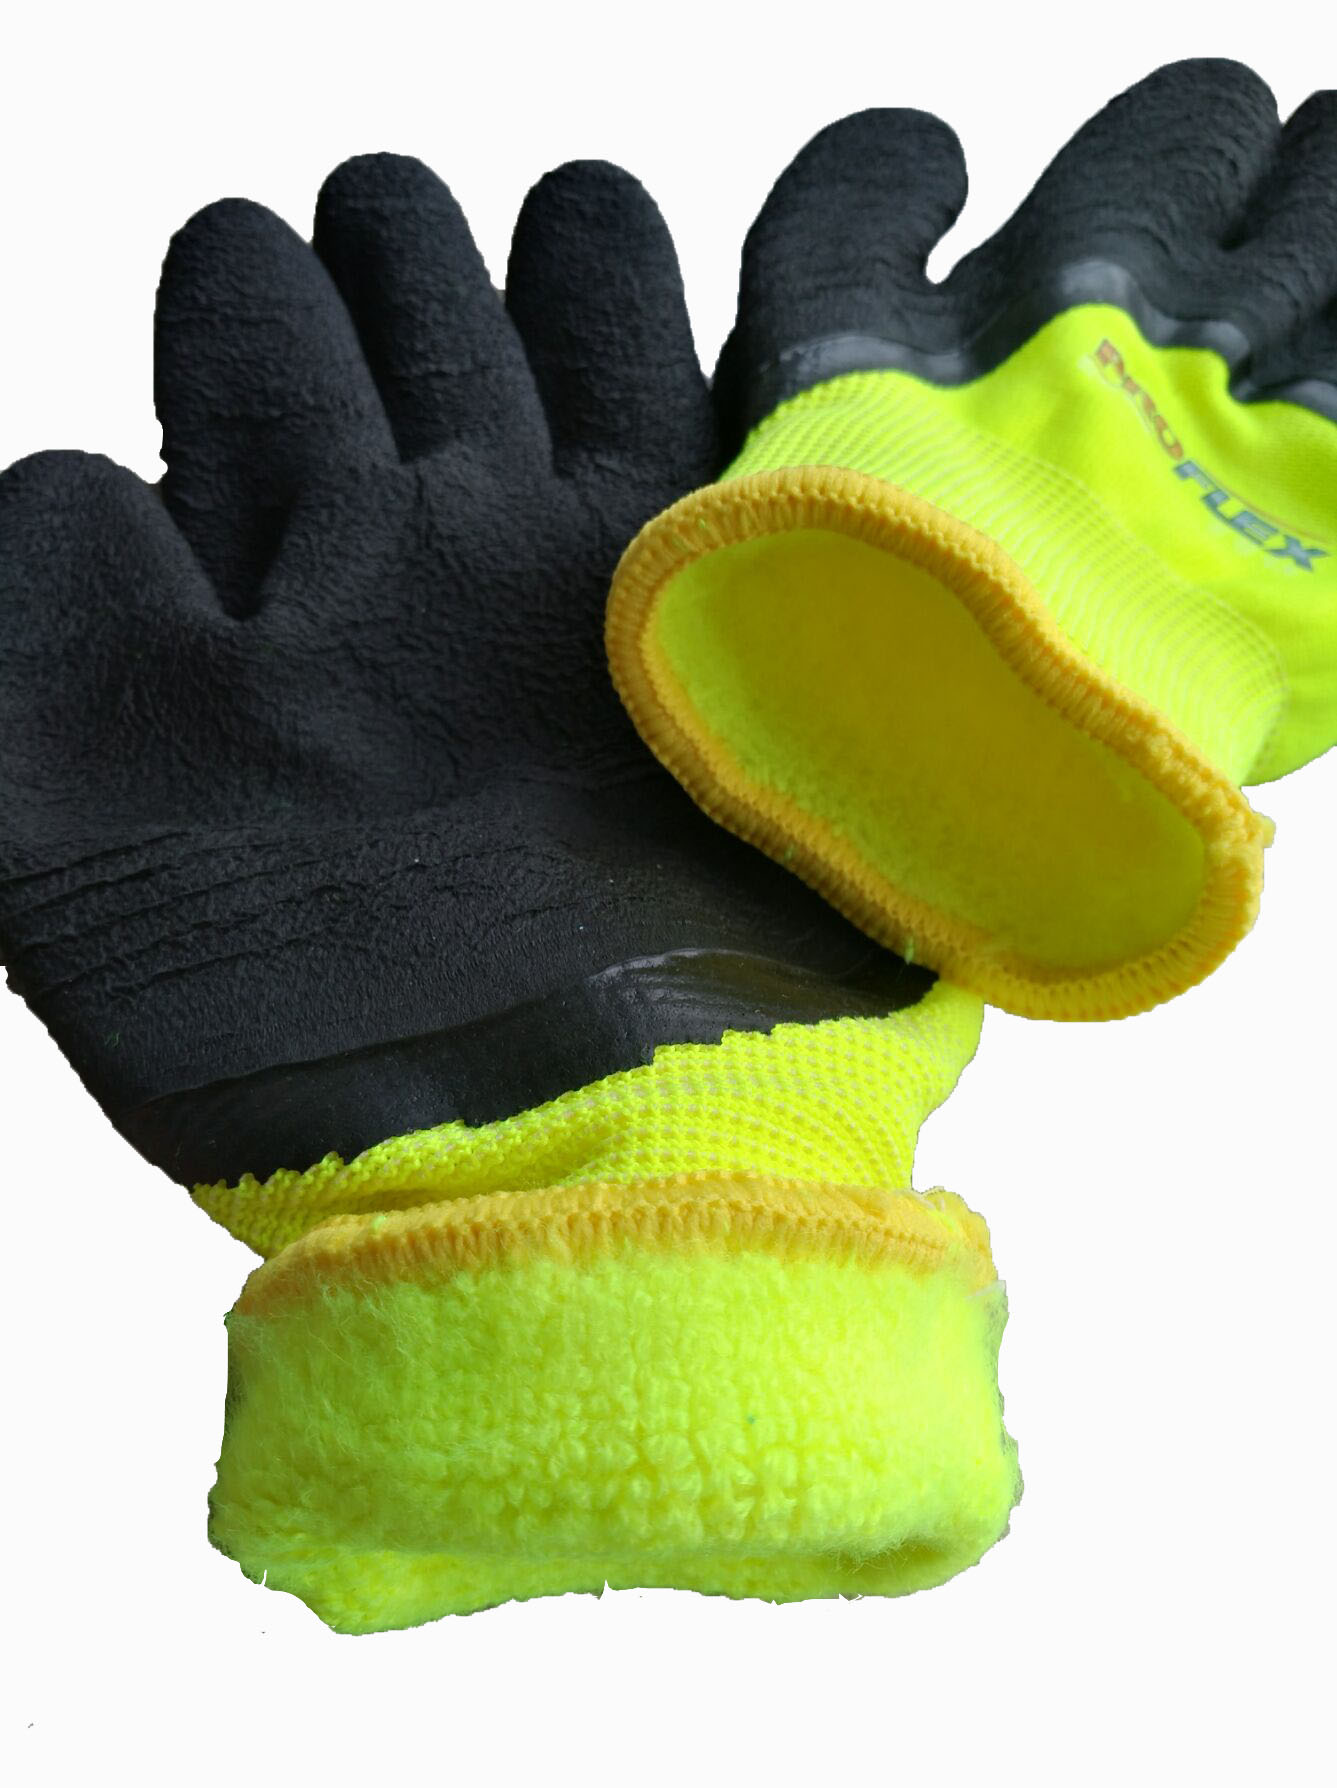 Work Glove winter use